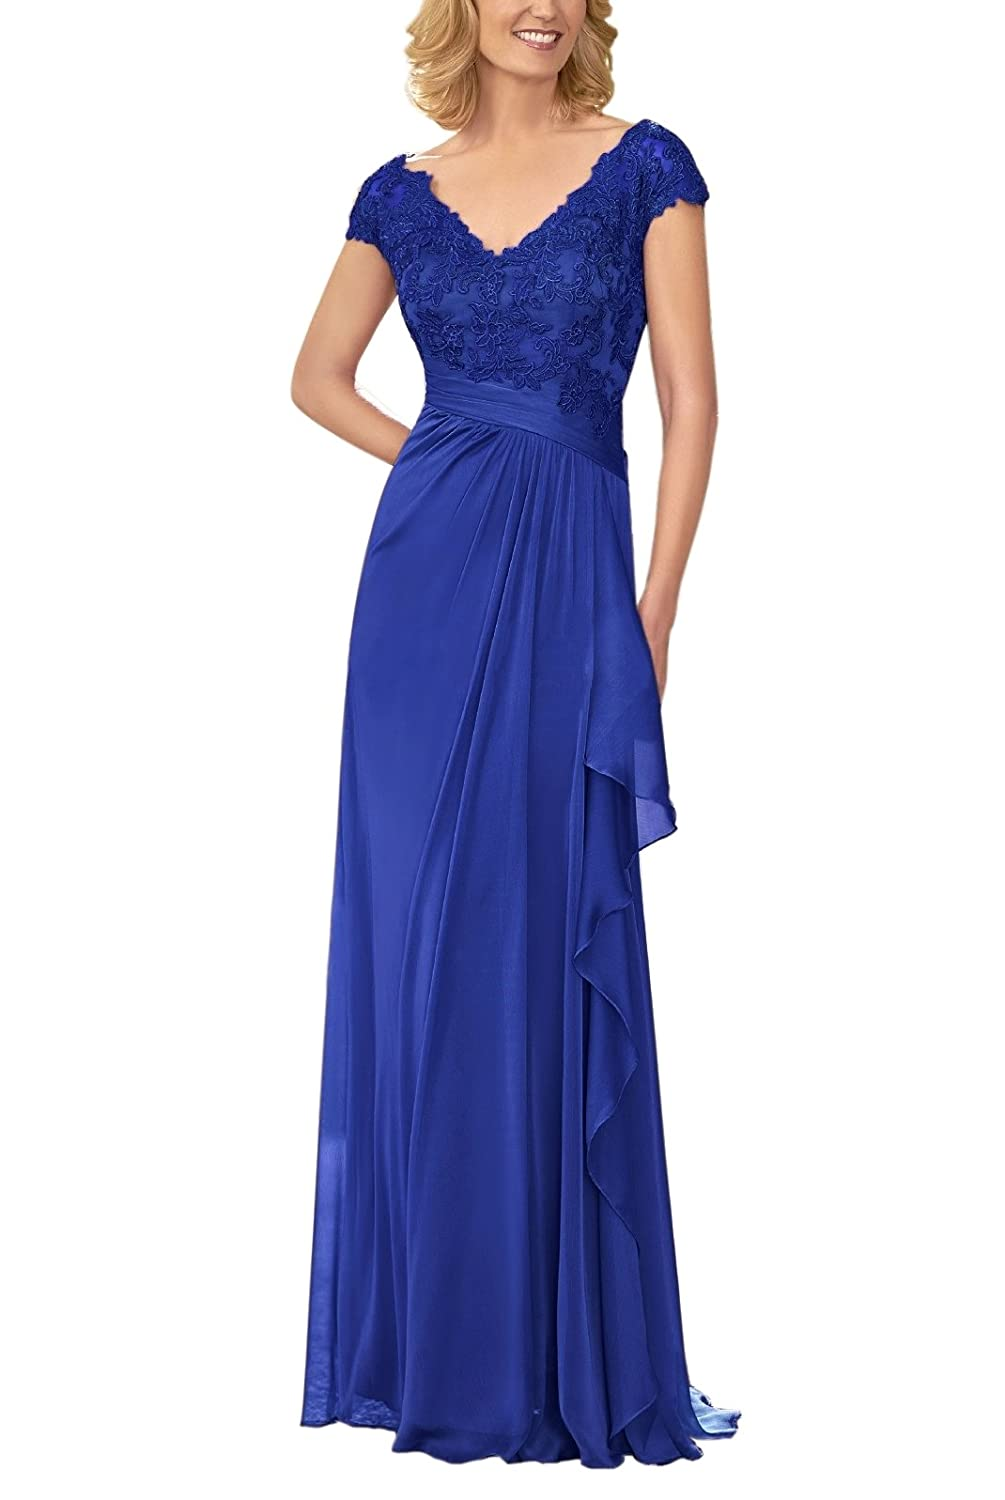 LOVEONLY Womens Caps V-Neck Chiffon Pleated Lace Appliques Mother of The Bride Dress Floor Length Formal Gowns